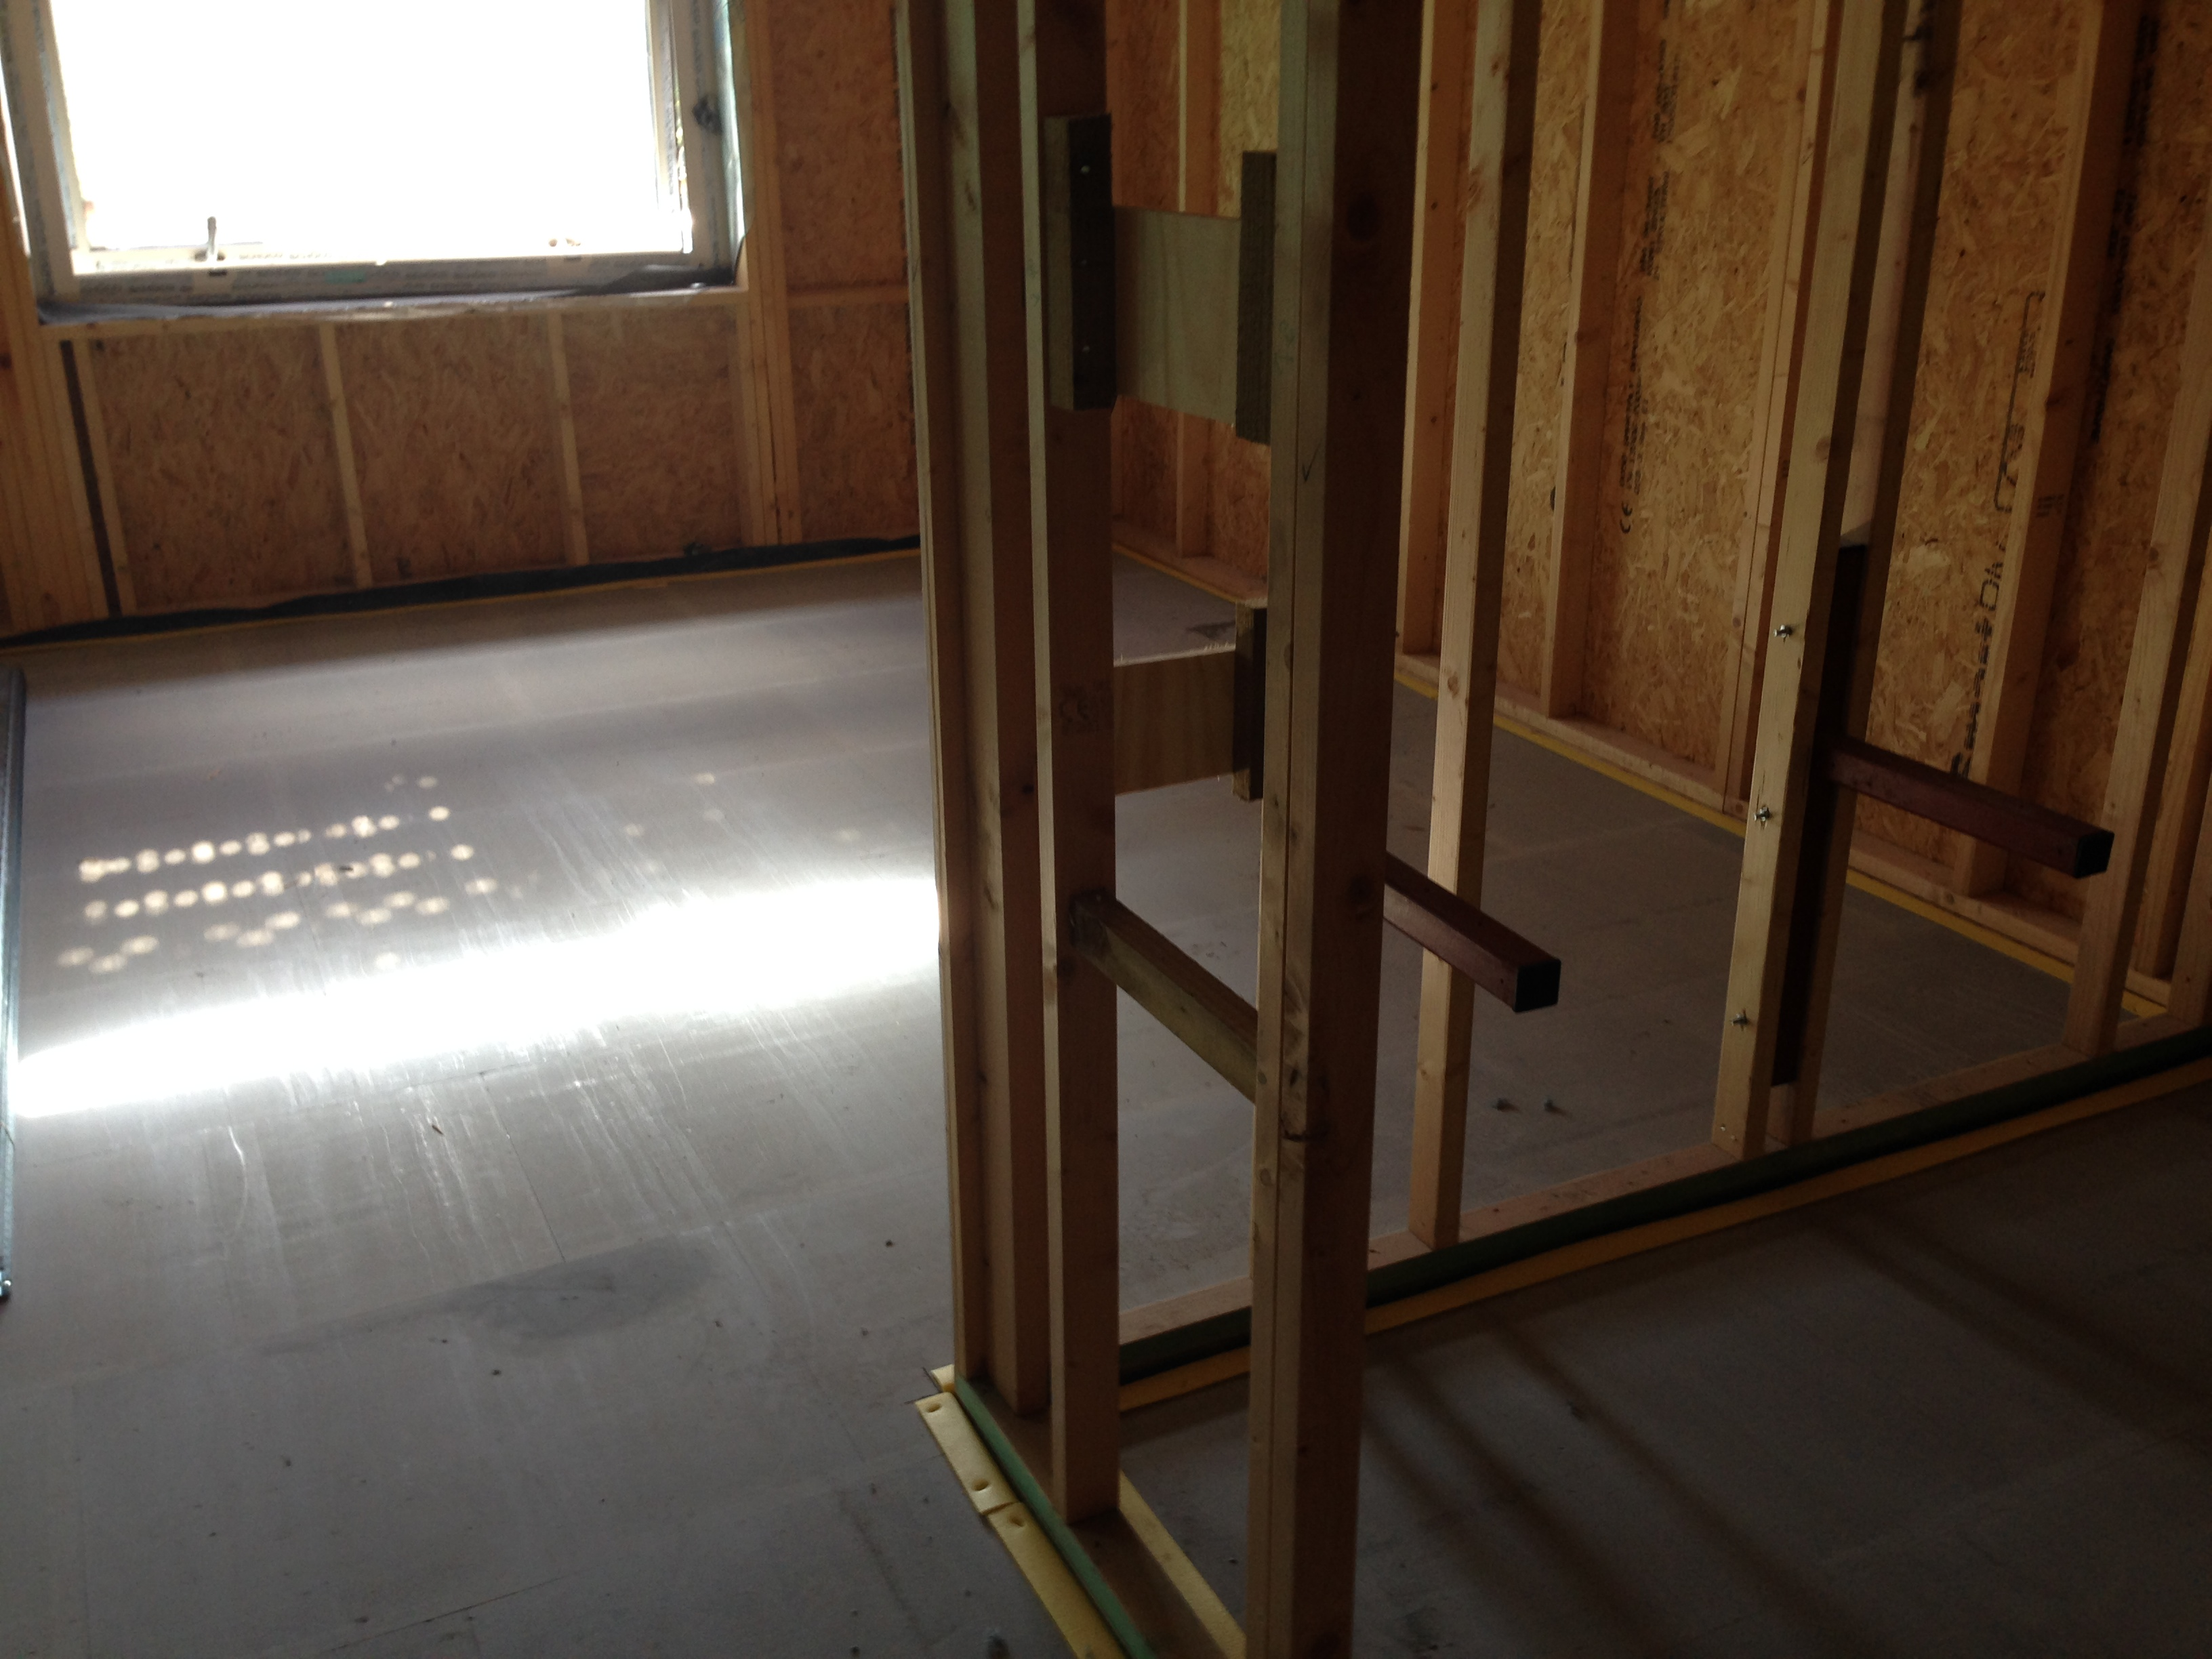 5 reasons to use JCW for acoustic flooring installation